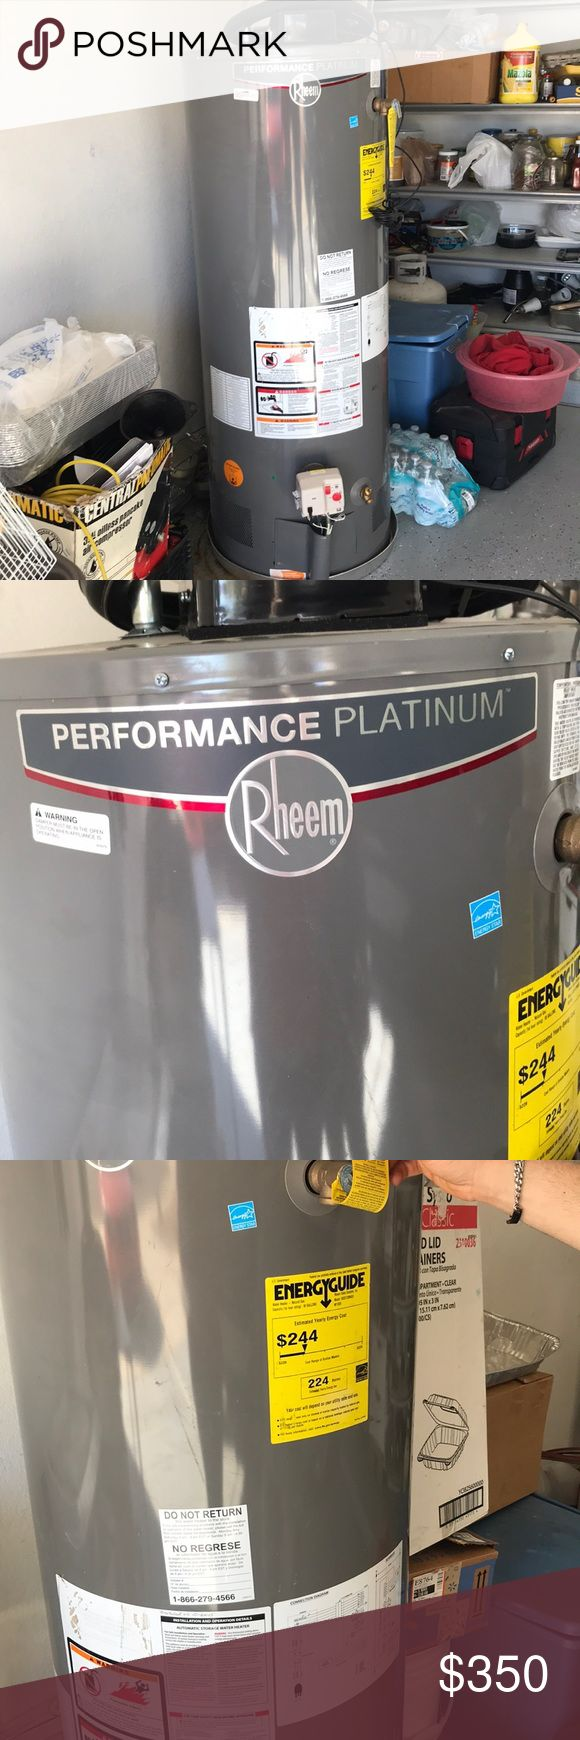 Performance platinum water heater Rheem high efficiency natural gas water heater. The push button ignition system ensures safe and easy startup. Its maintenance free combustion air intake system means there are no filters to clean and replace. The self-diagnostic gas control valve monitors system performance. A premium grade anode rod provides long lasting tank protection. Factory installed temperature and pressure relief valve and 3/4 in. water connections are included with the water heater…